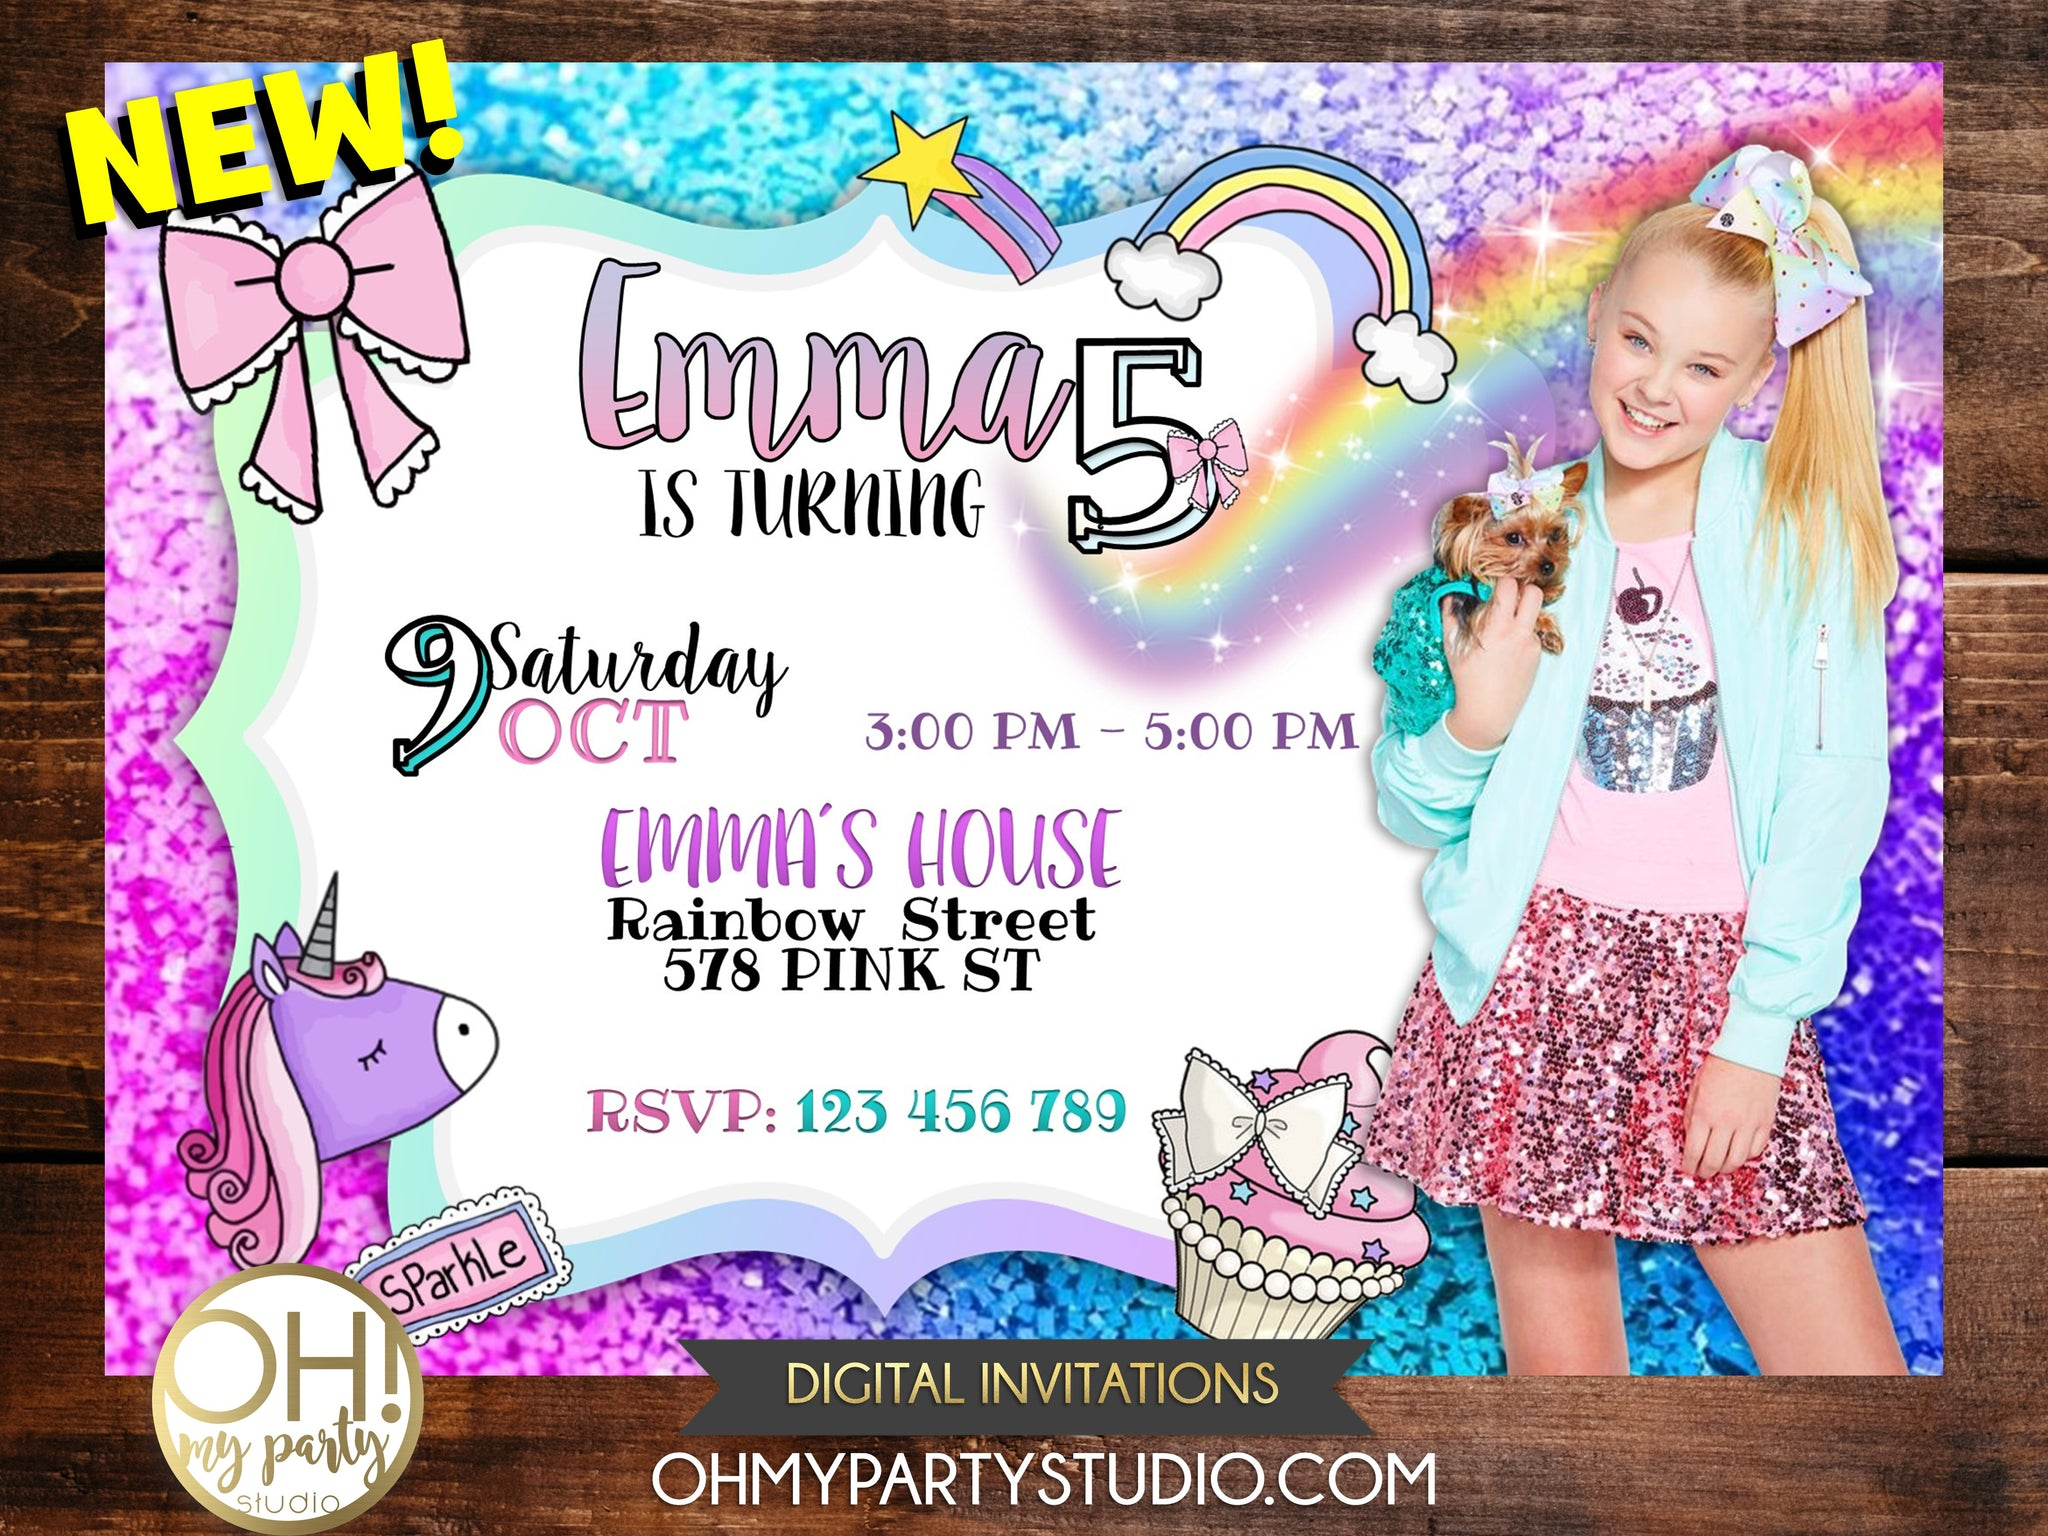 JOJO SIWA BIRTHDAY INVITATION, JOJO SIWA PARTY, JOJO SIWA BIRTHDAY, JOJO SIWA PARTY,JOJO SIWA BIRTHDAY PARTY, JOJO SIWA INVITATION, JOJO SIWA INVITATIONS